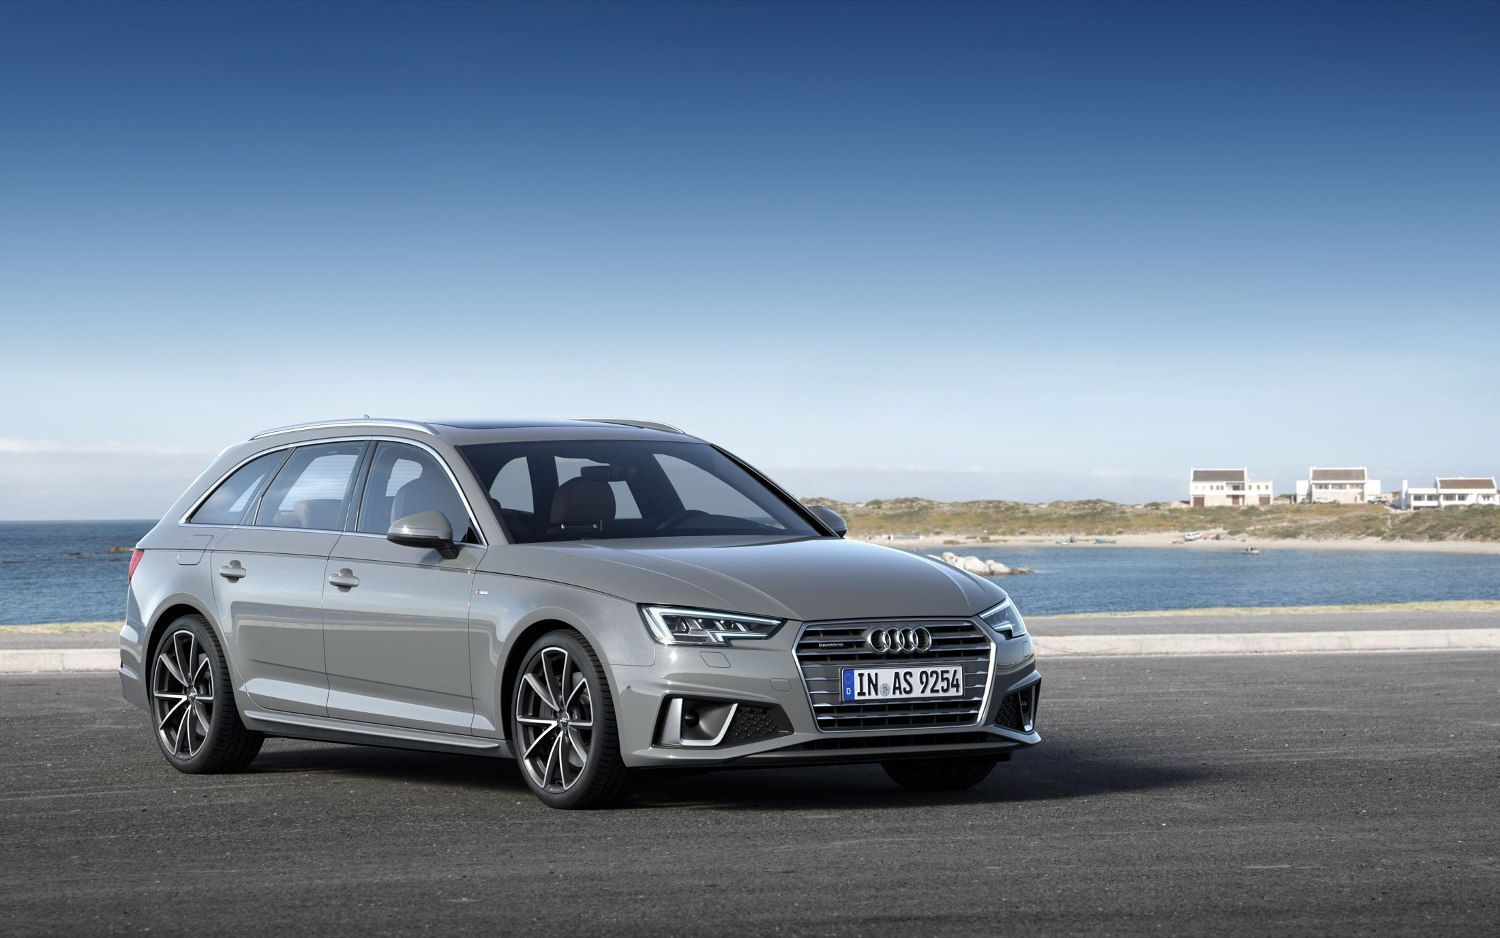 New Audi A4 Hybrid 2019 Performance And New Engine Cars Audi Colours 2019 2019 2020 Audi News Newaudicars 2019 2020 Audi Colours 2019 Audi Release Date Price